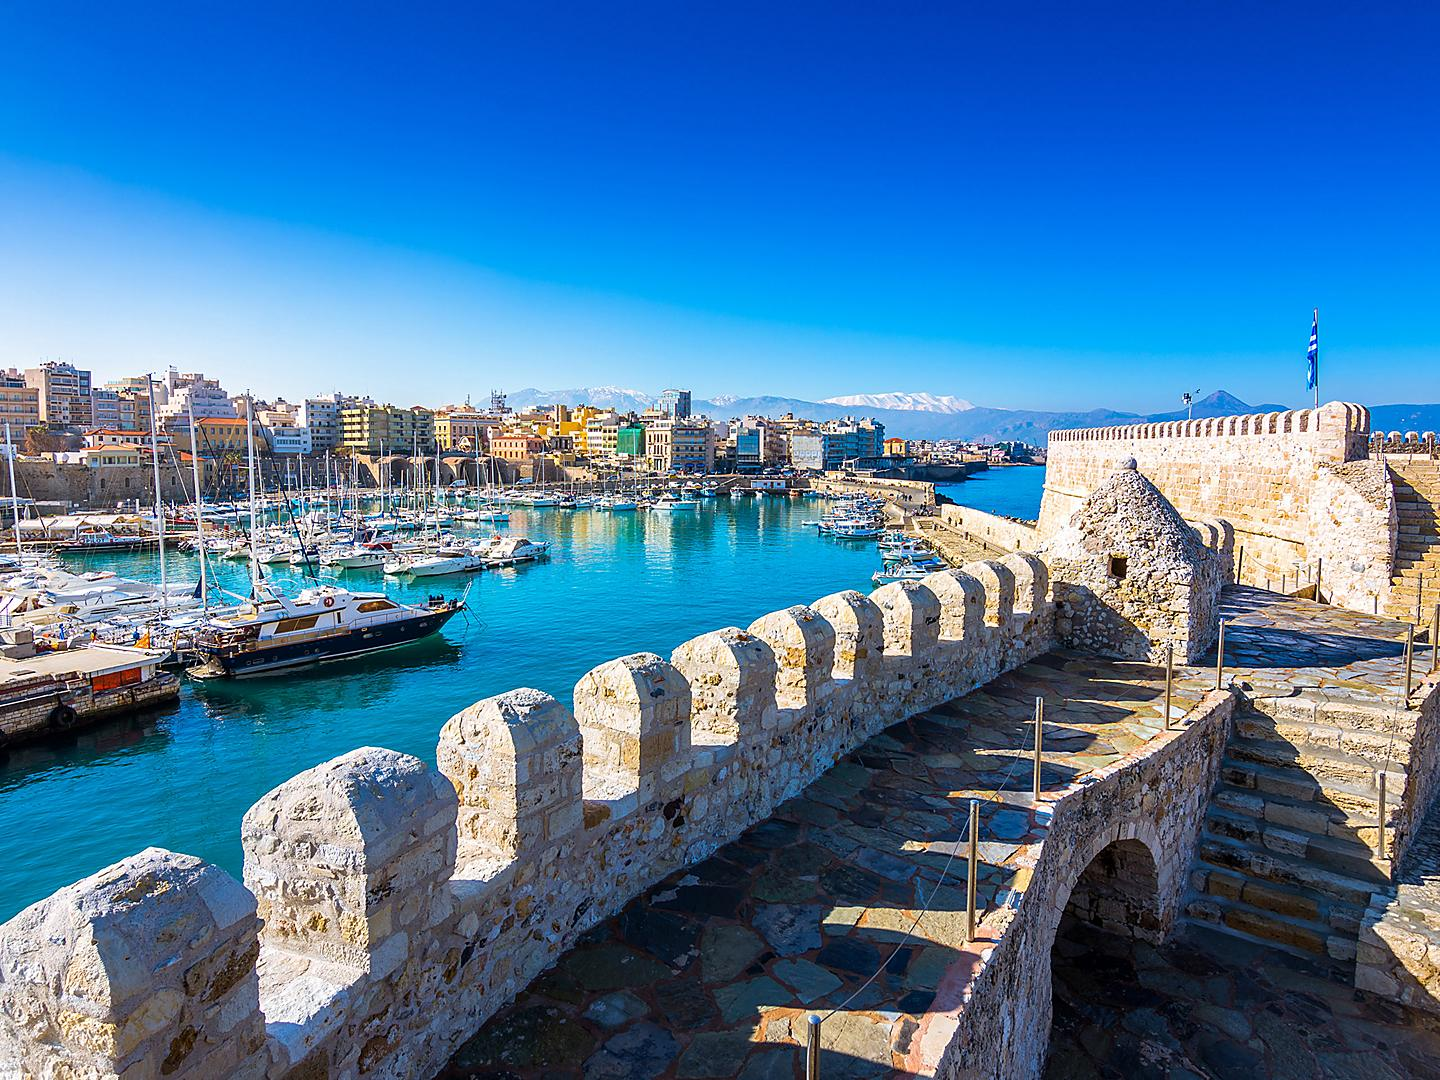 Greece Crete Port Heraklion Venetian Fortress Koule